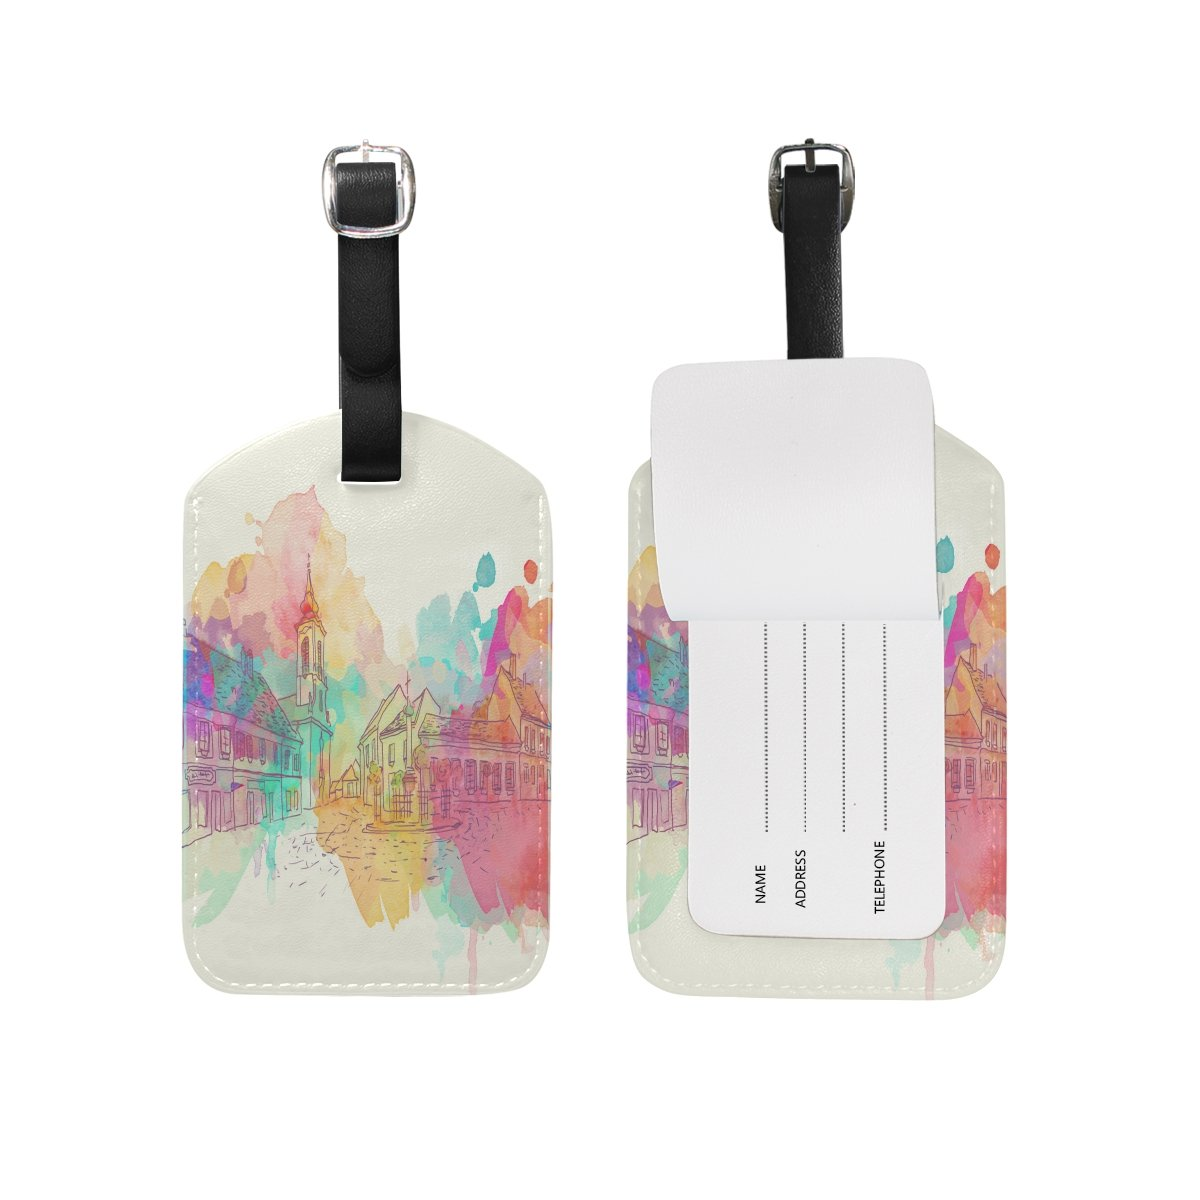 Saobao Travel Luggage Tag Colorful Building PU Leather Baggage Suitcase Travel ID Bag Tag 1Pcs